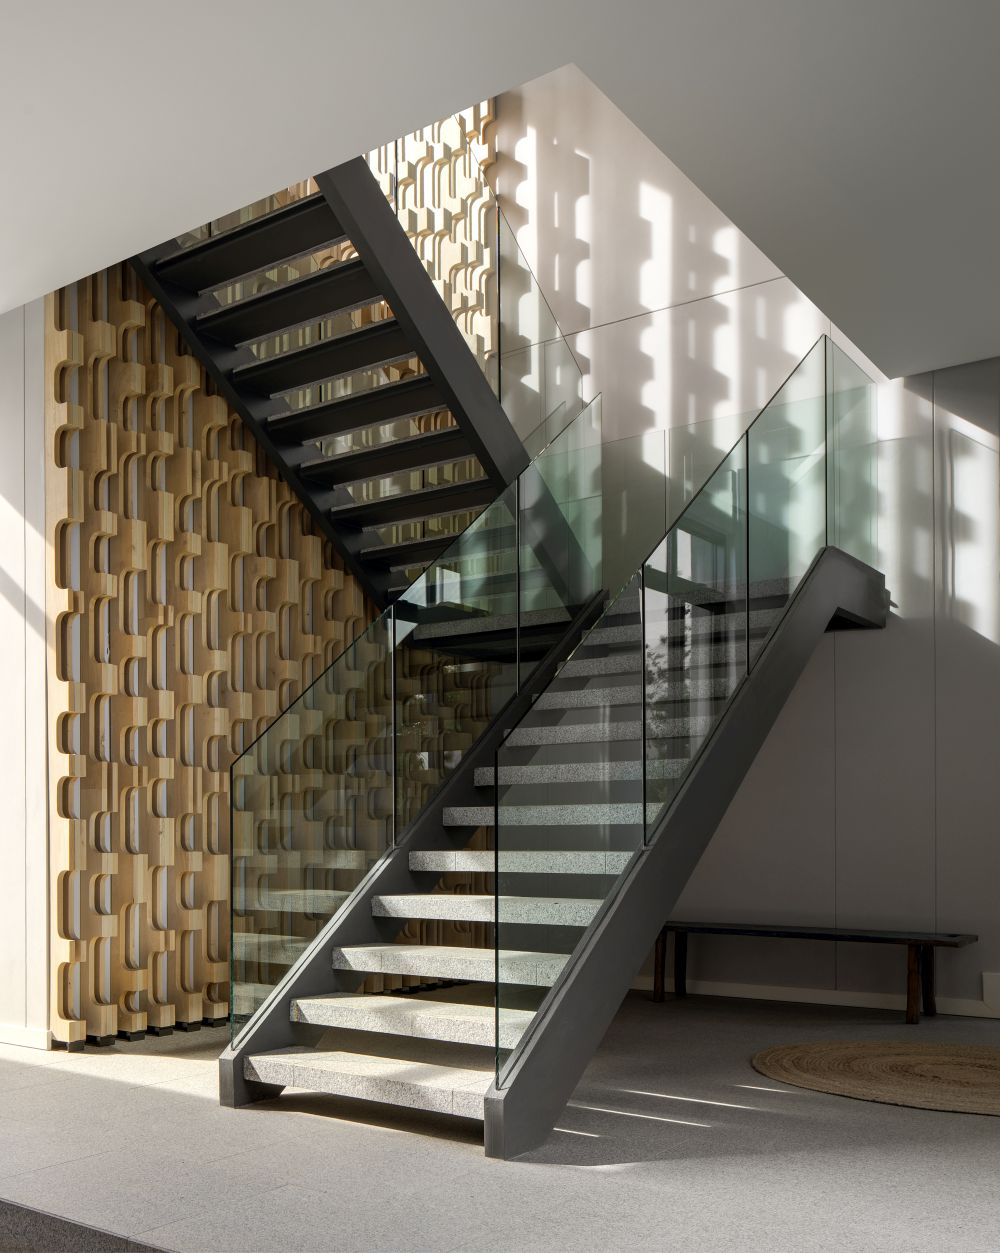 The staircase which connects the two floors has glass railings and is complemented by a decorative wall